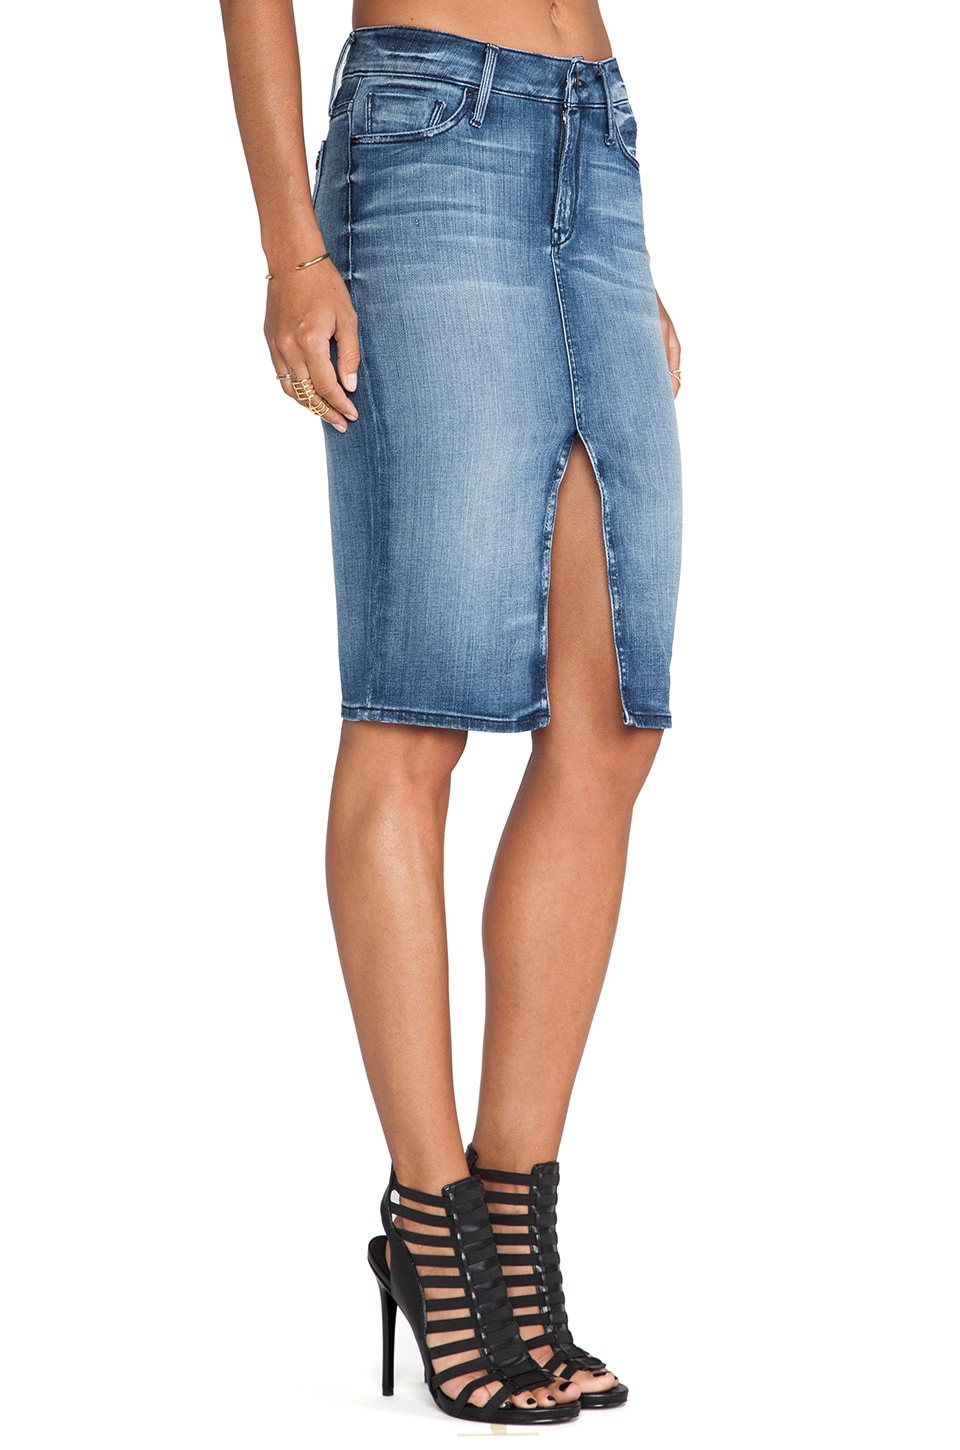 Black Orchid Jean Skirt in Blue My Mind | REVOLVE